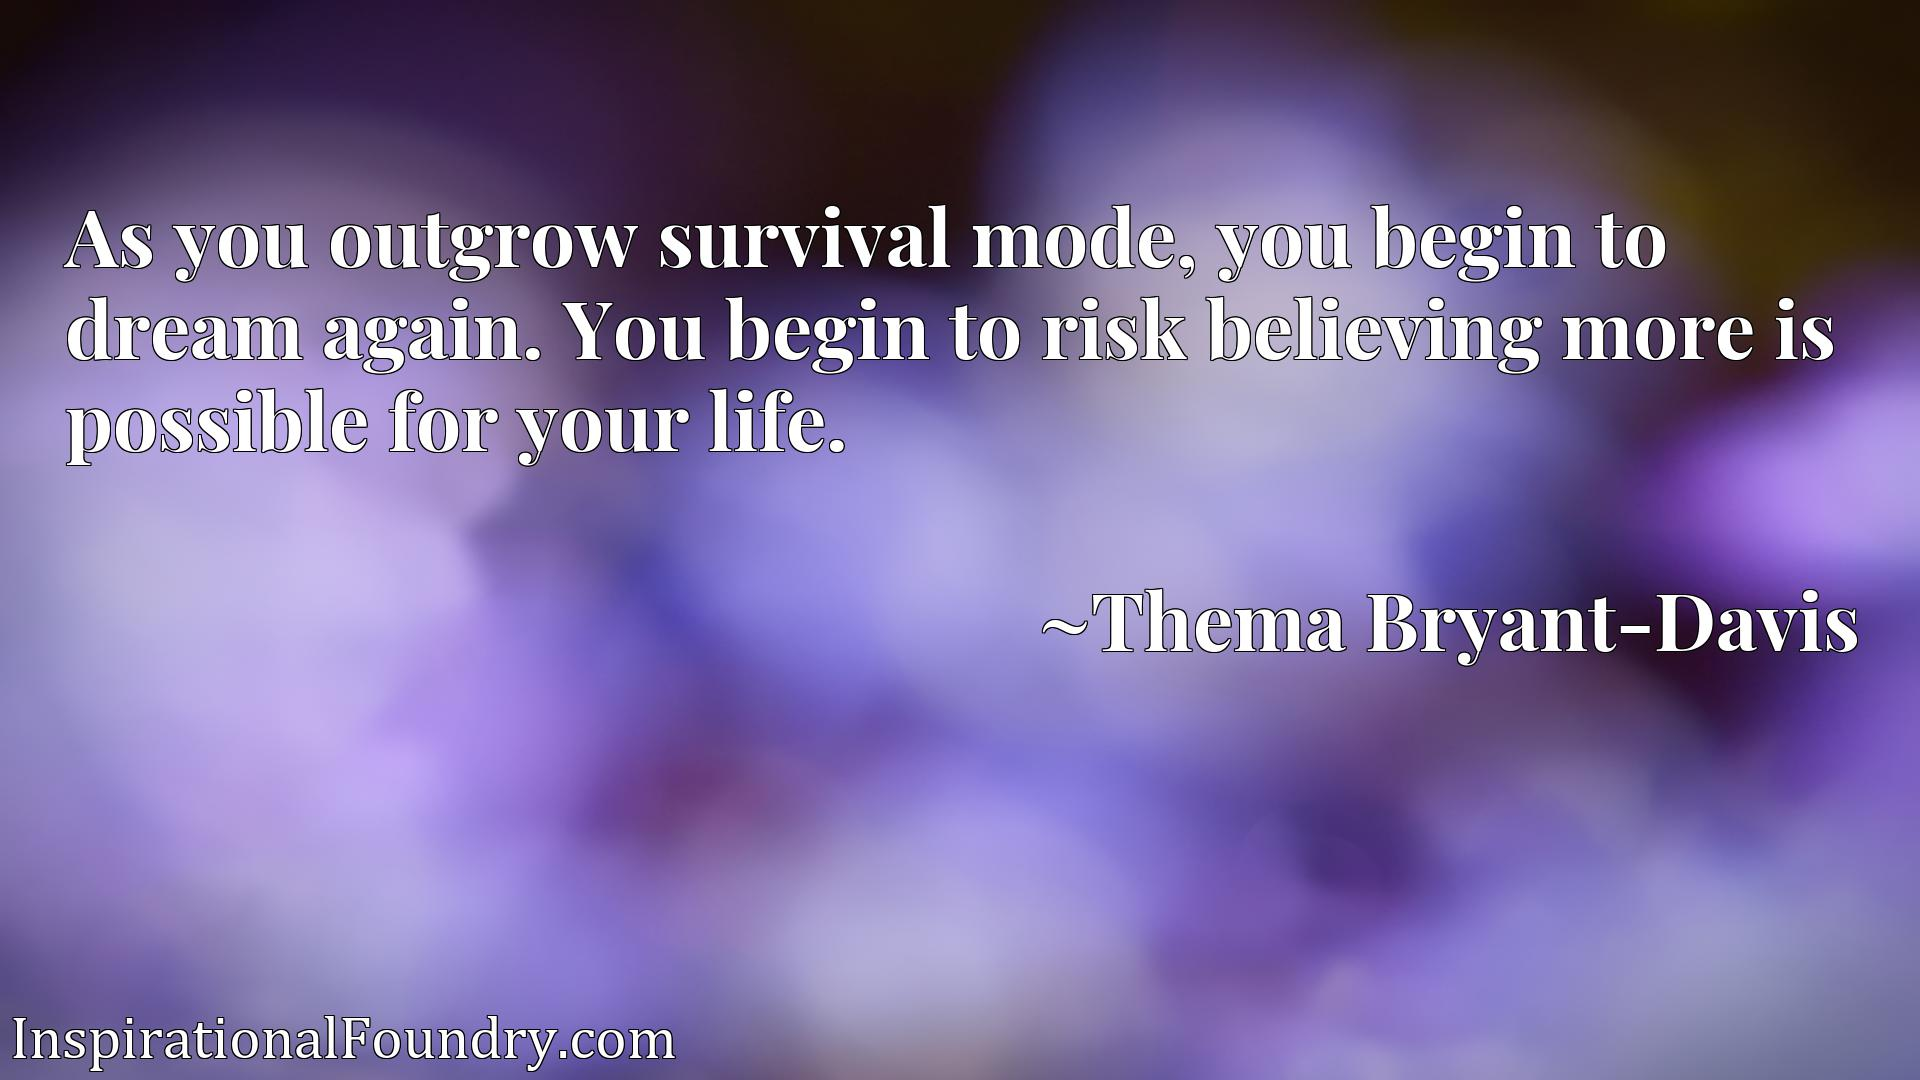 As you outgrow survival mode, you begin to dream again. You begin to risk believing more is possible for your life.